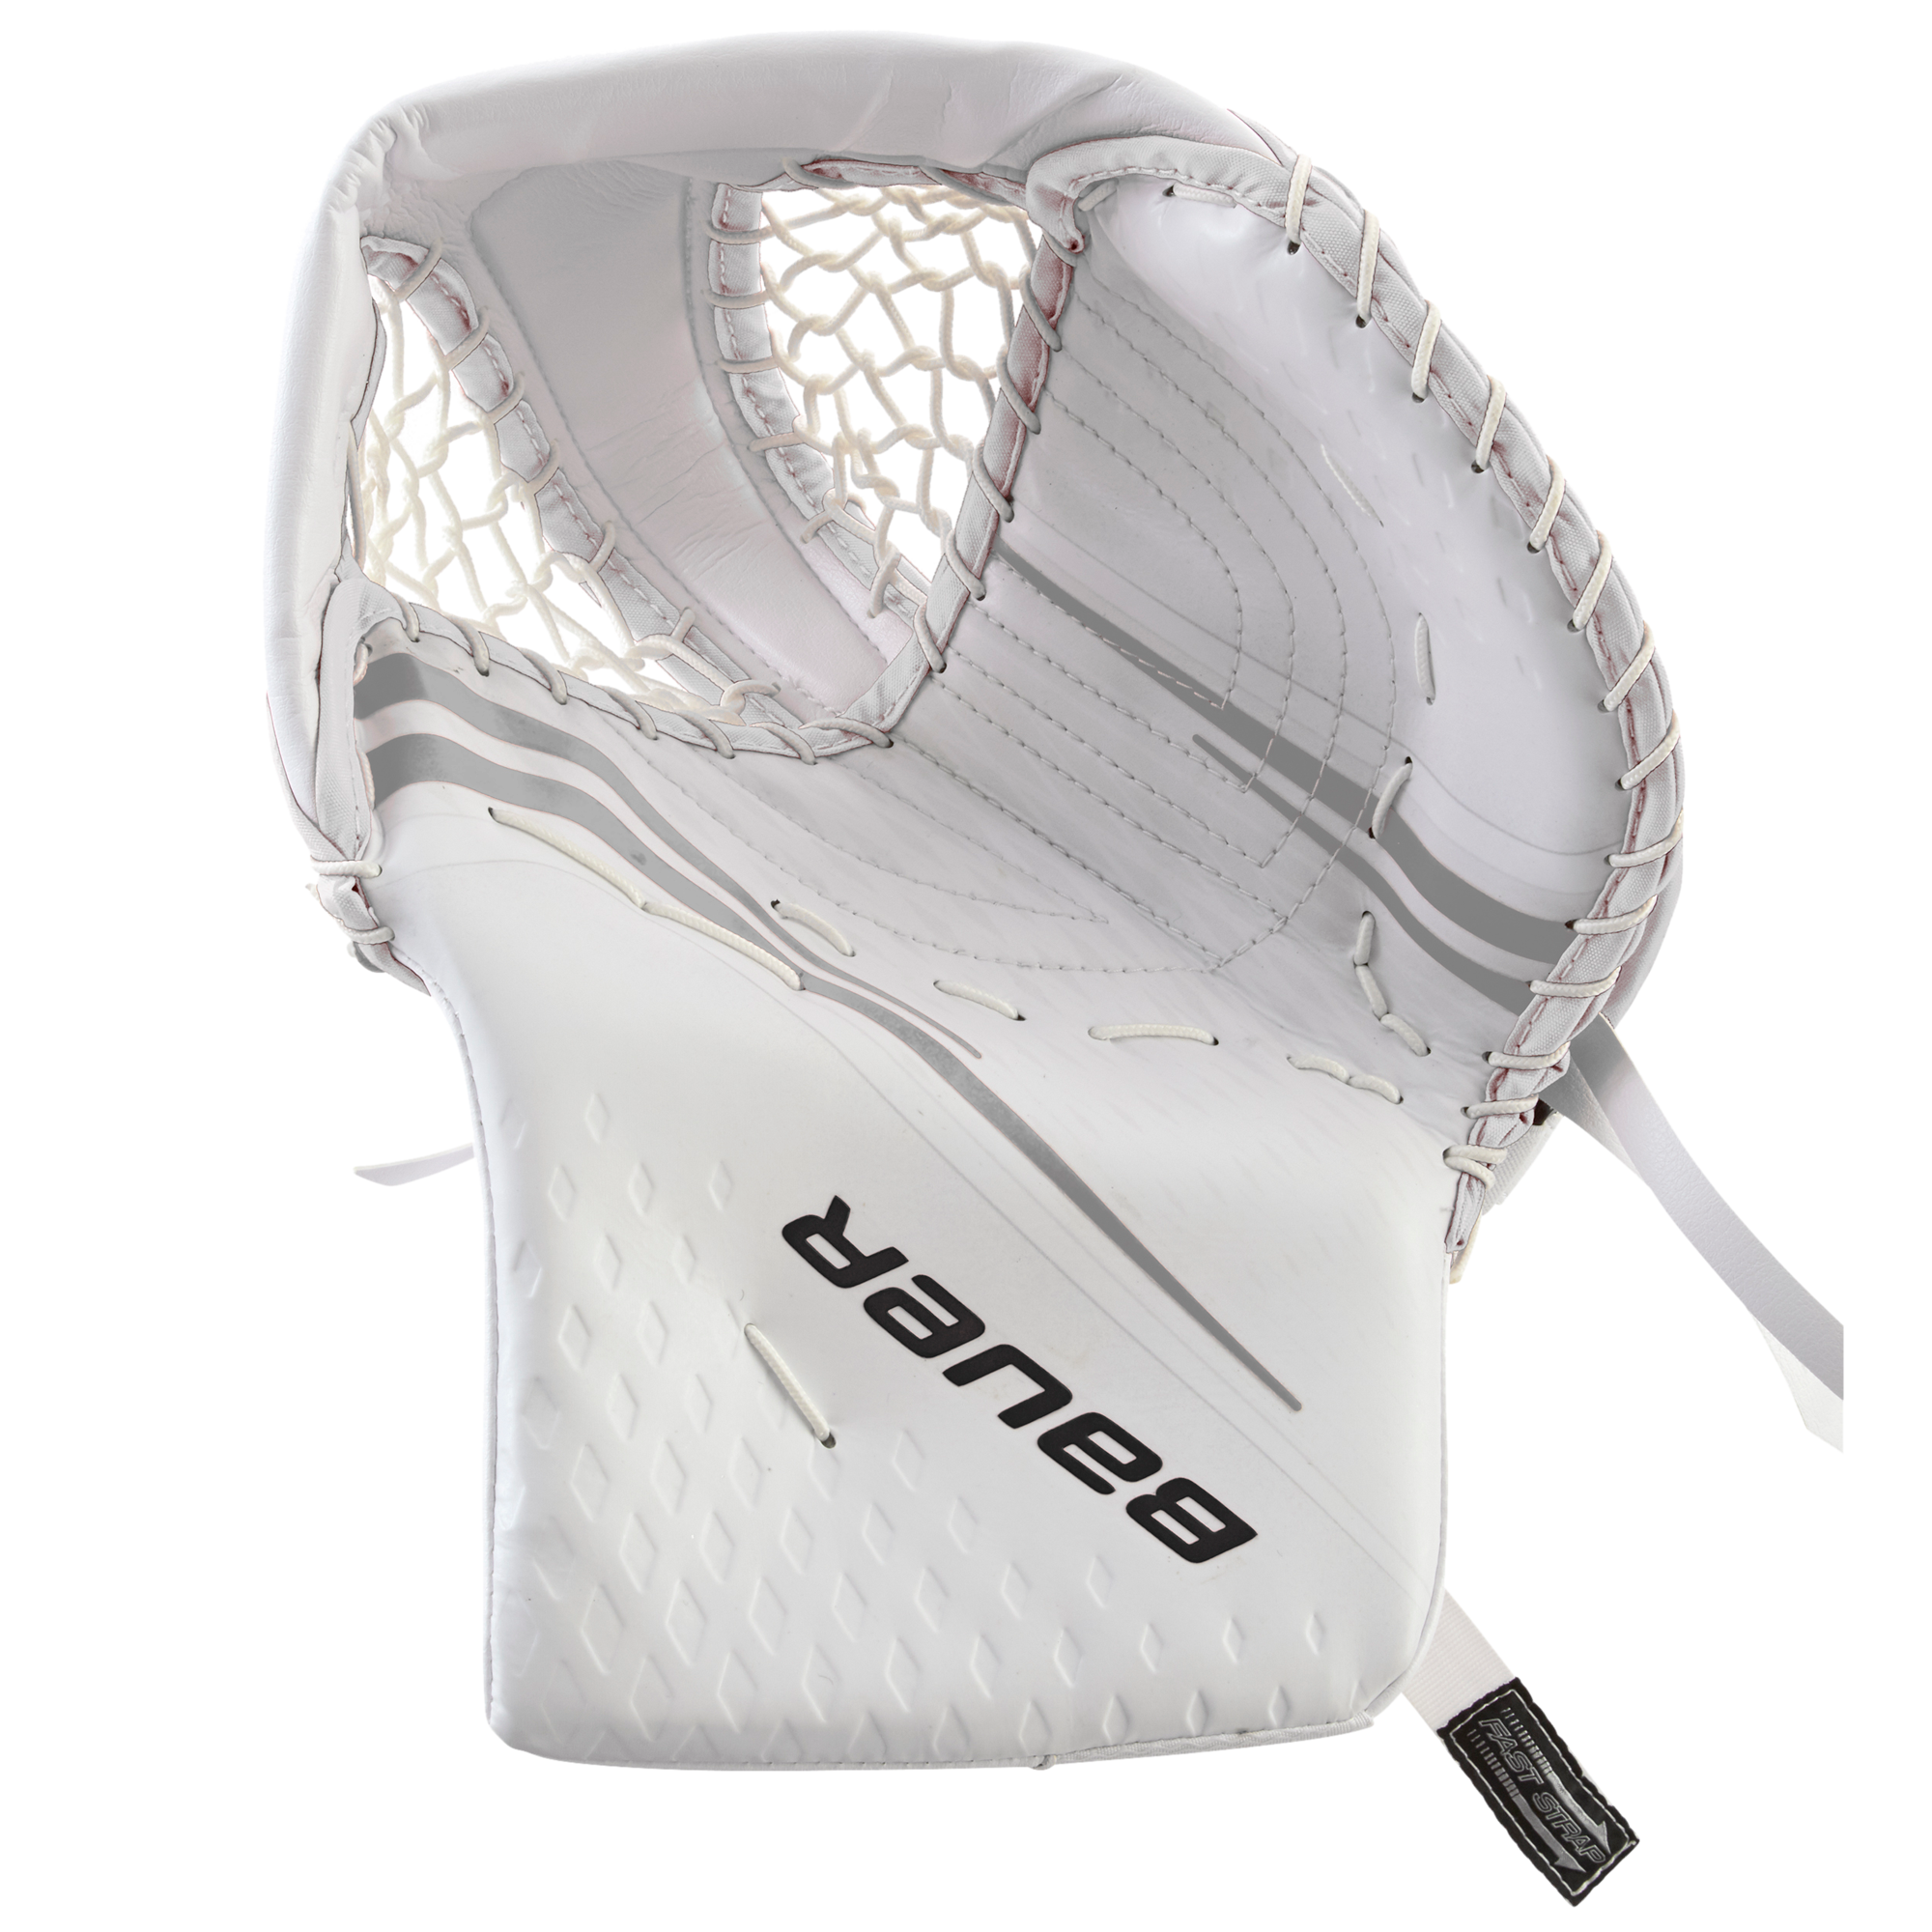 Vapor 2X PRO Catch Glove Senior,,Размер M